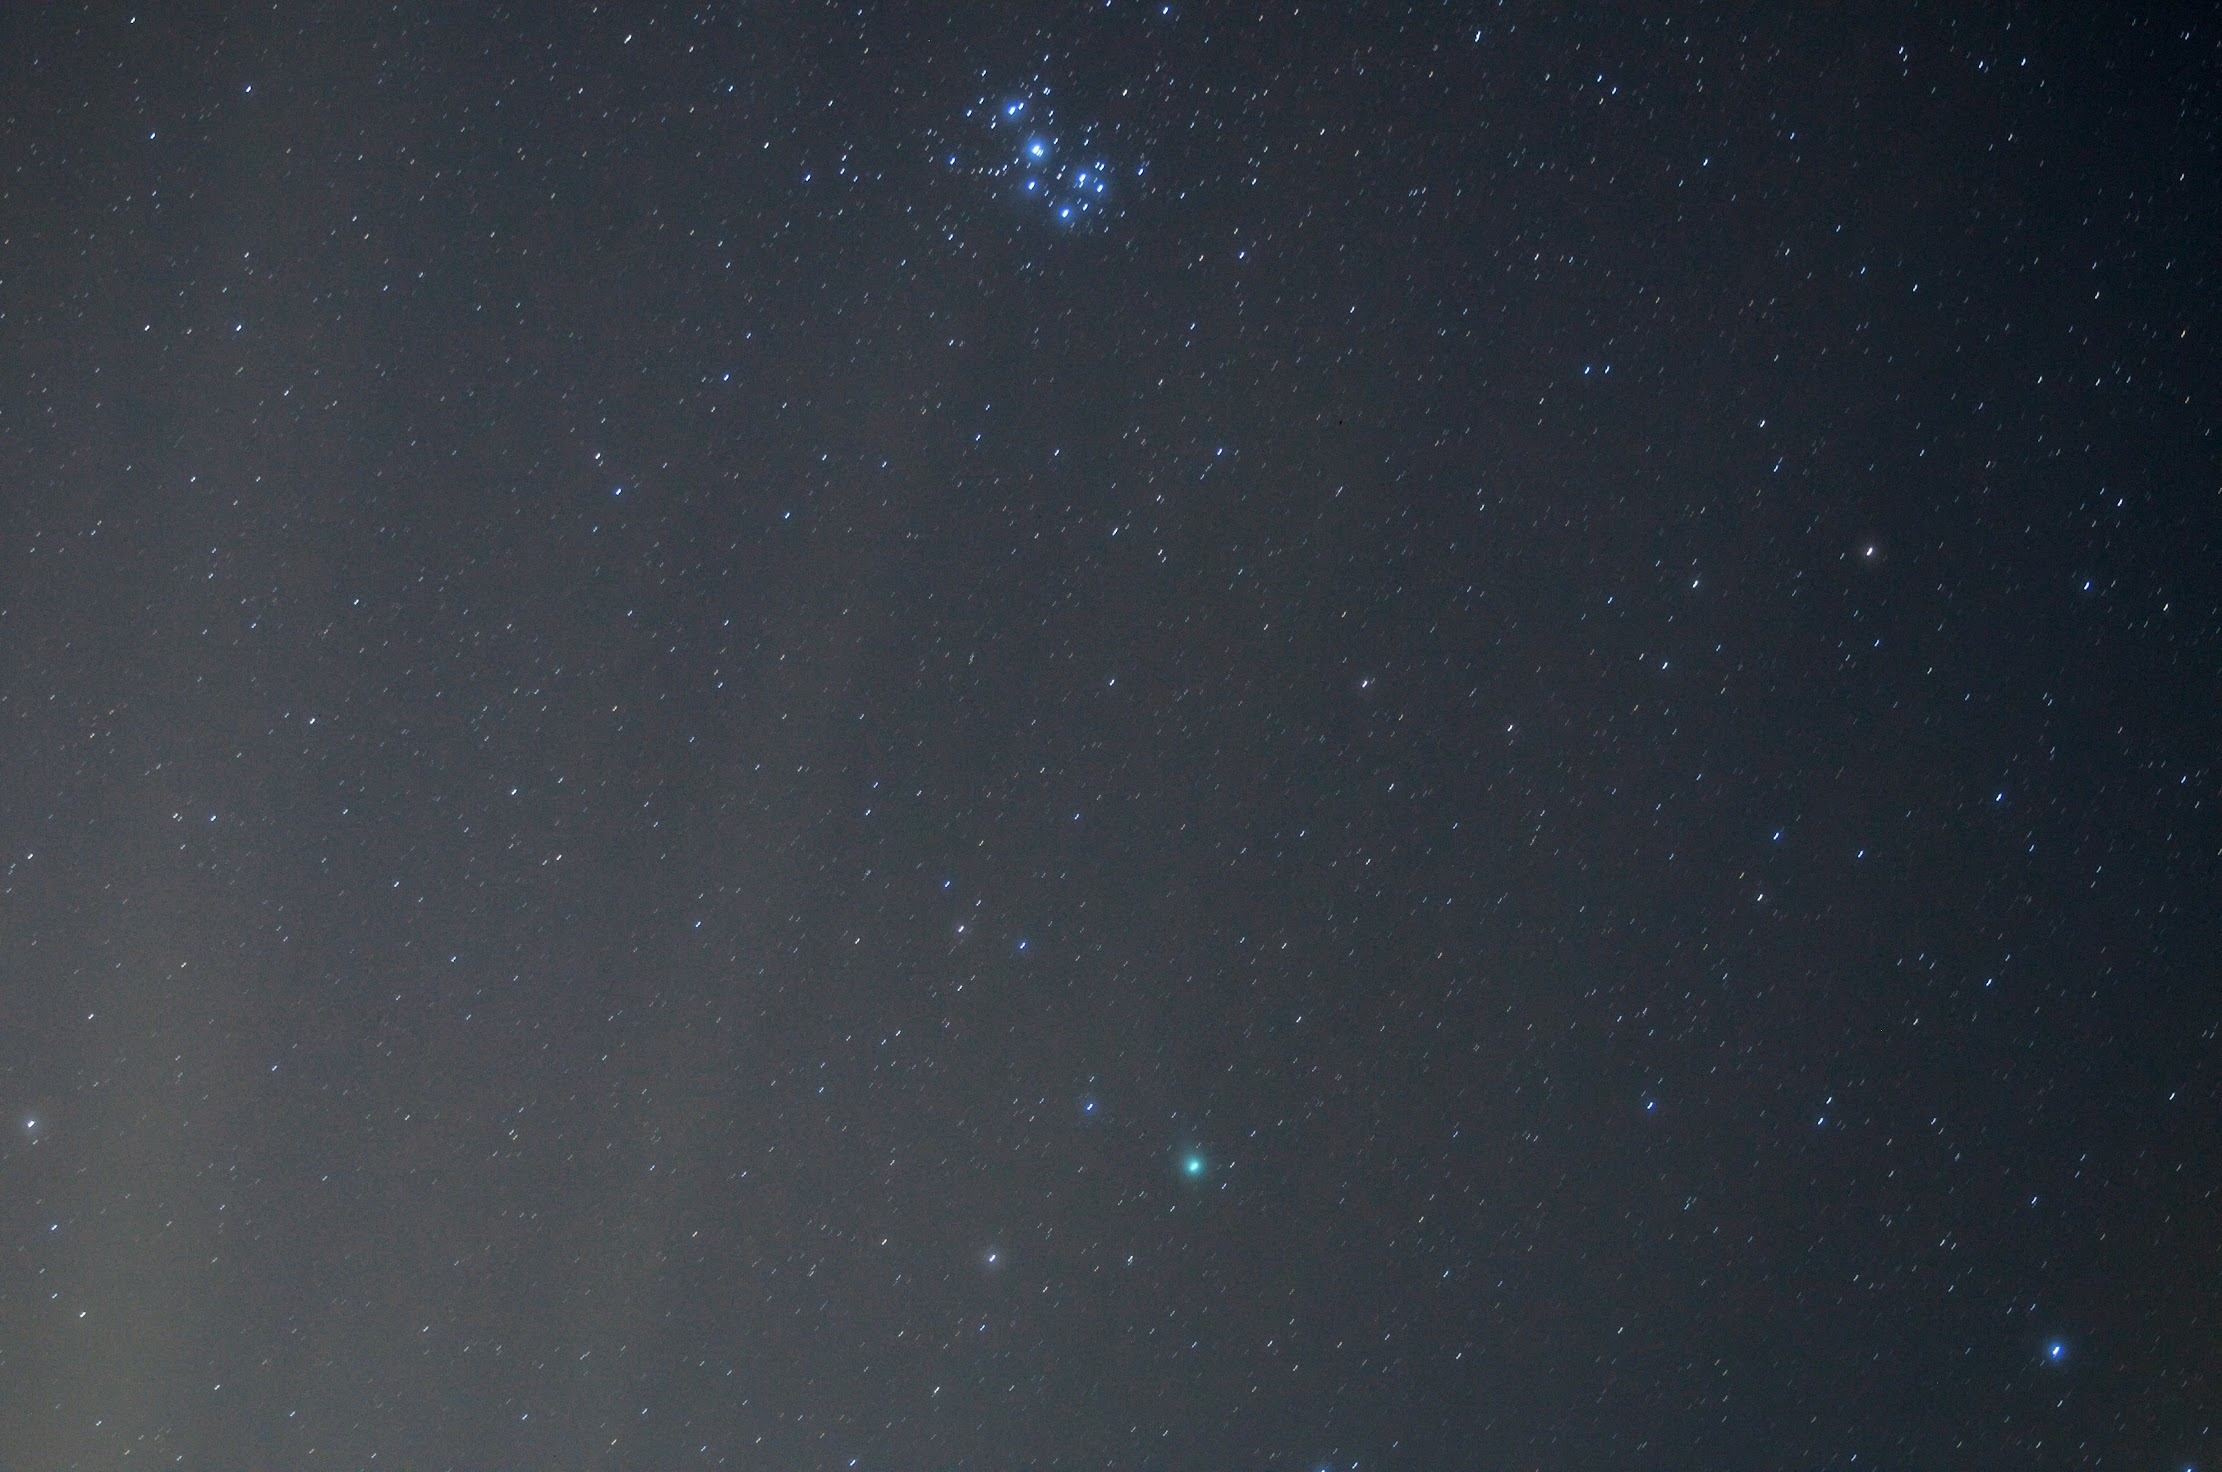 Pleiades (M45) and Comet Lovejoy (C/2014 Q2)